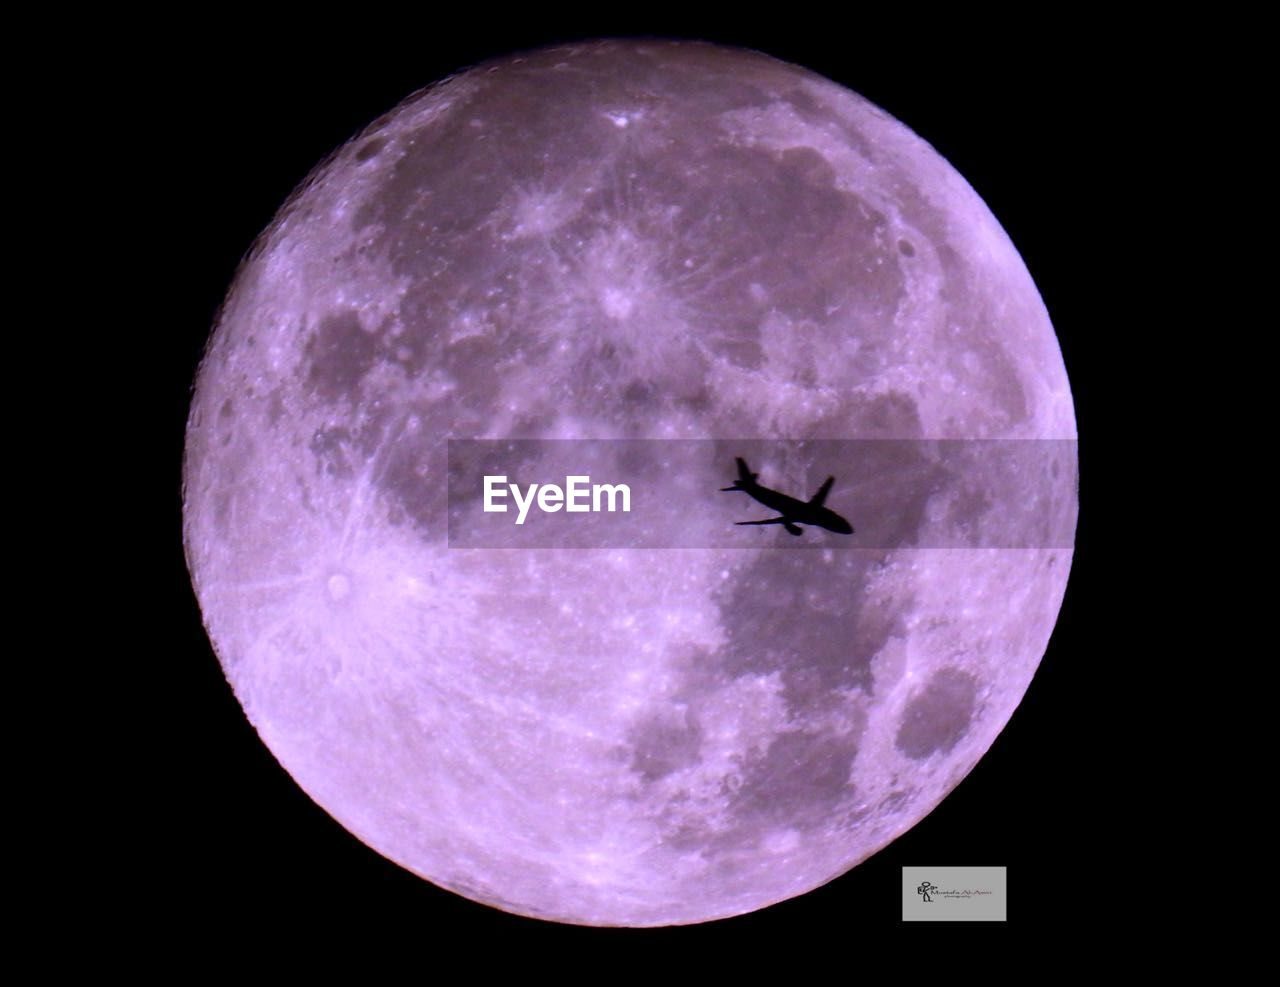 sky, night, moon, astronomy, space, flying, nature, no people, airplane, geometric shape, purple, air vehicle, beauty in nature, circle, low angle view, outdoors, full moon, mid-air, silhouette, animal themes, planetary moon